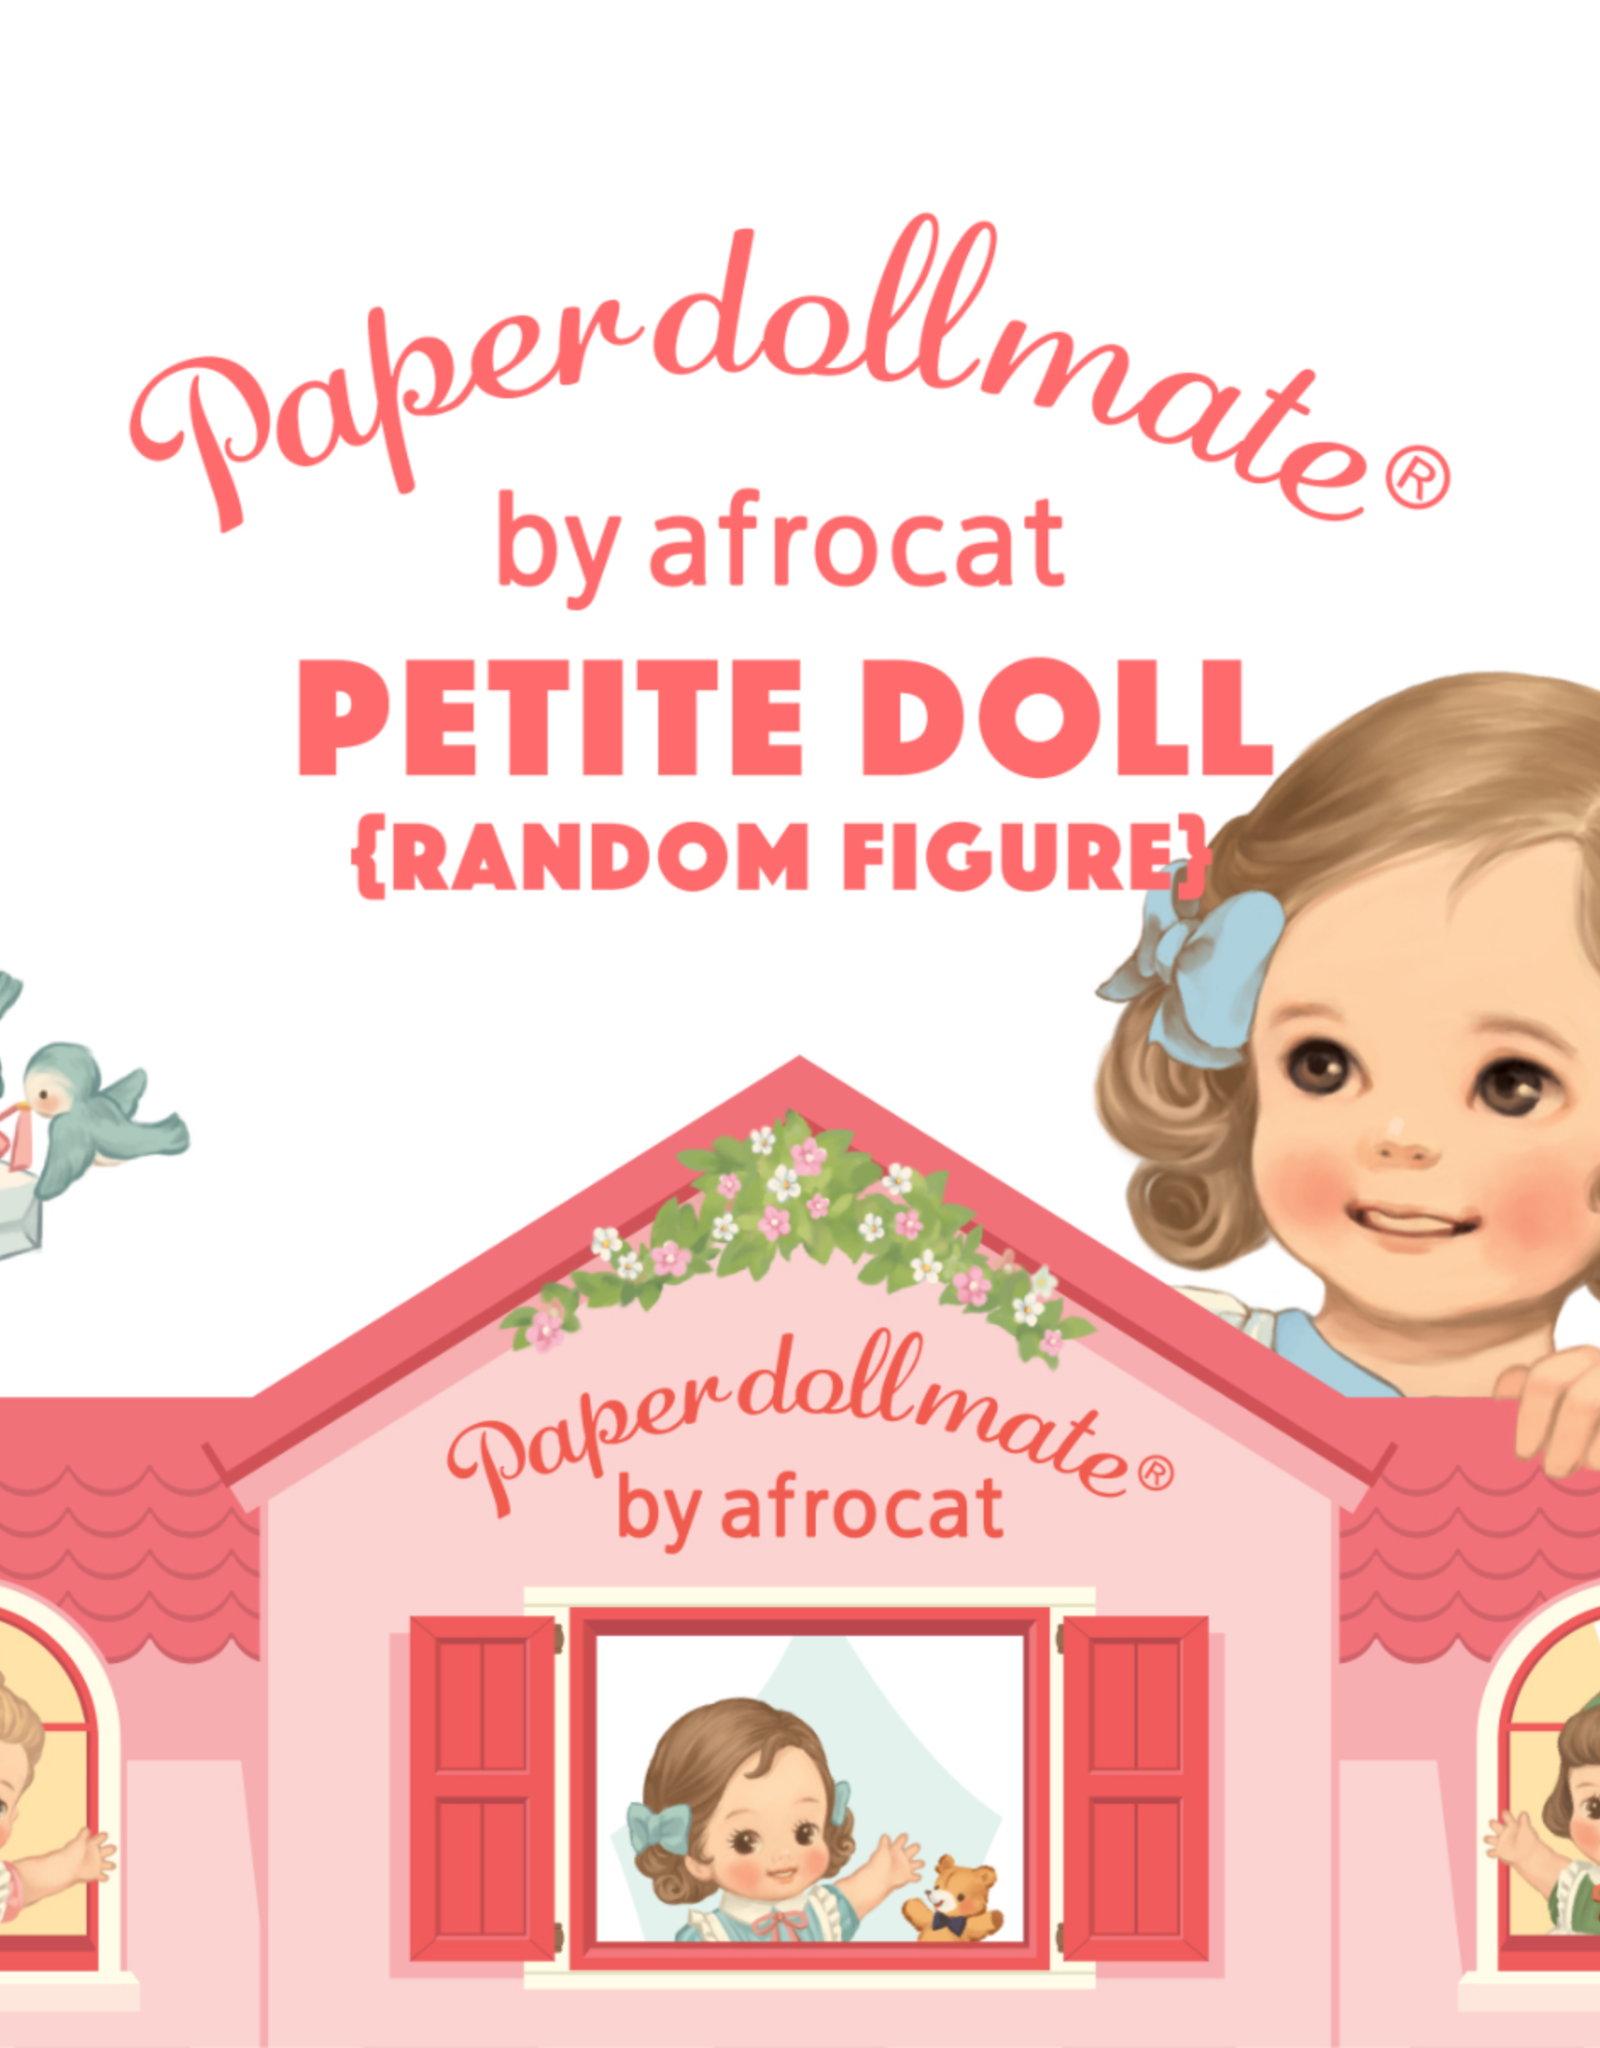 Afrocat Paper doll mate Petite doll